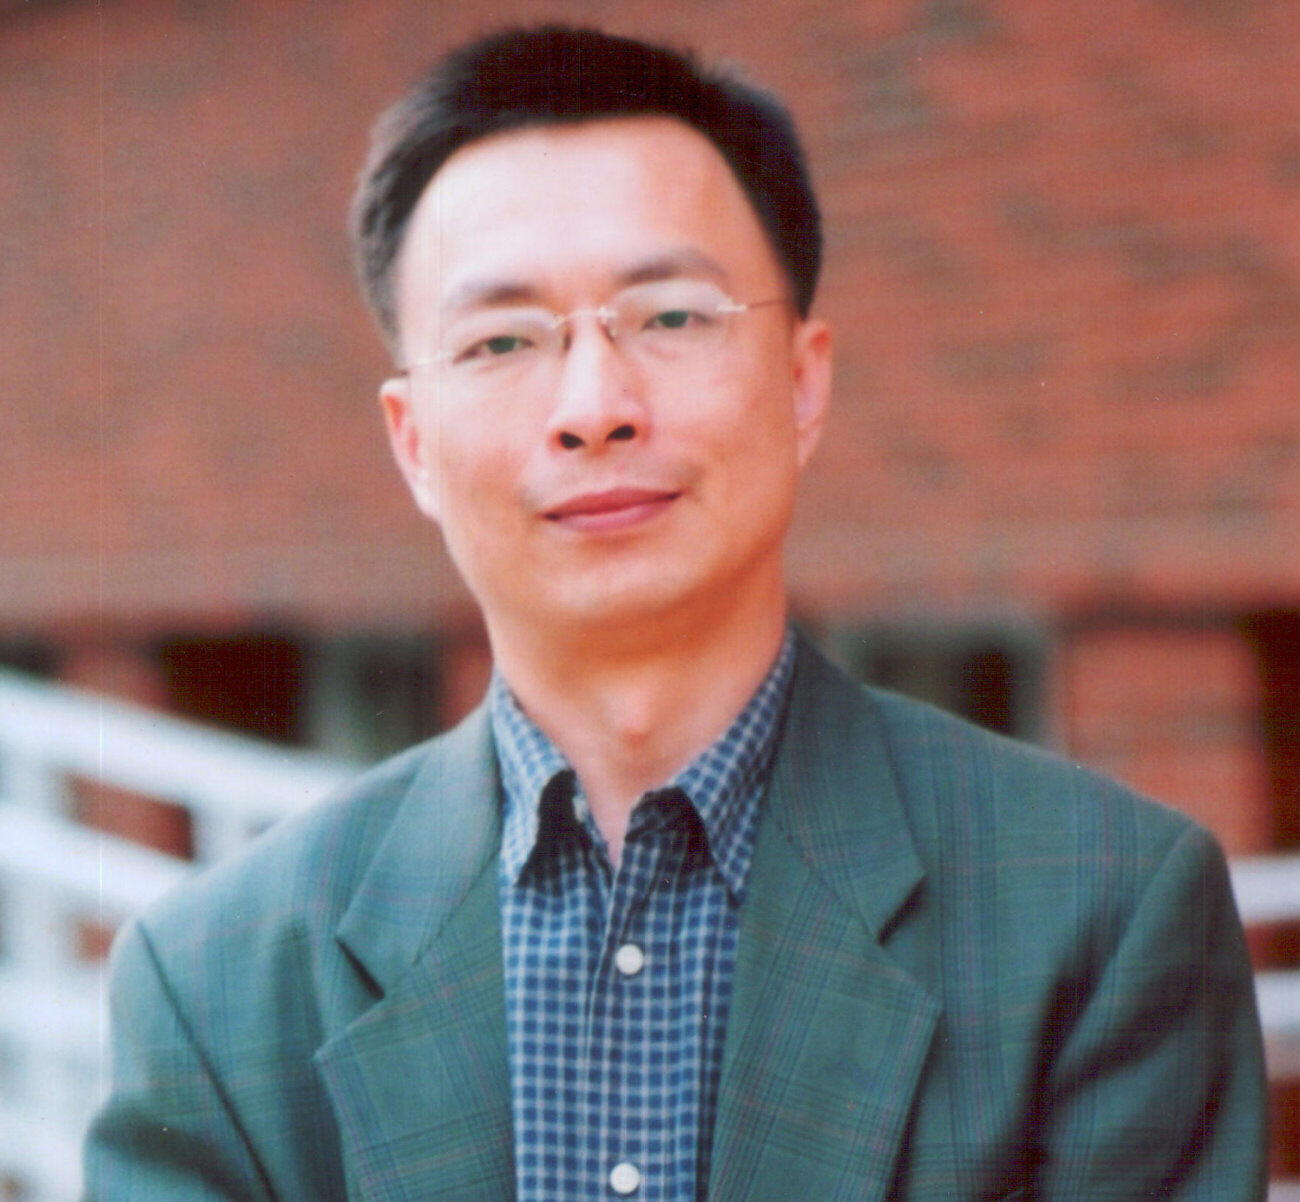 Hung-Ju Liao, Assistant Professor